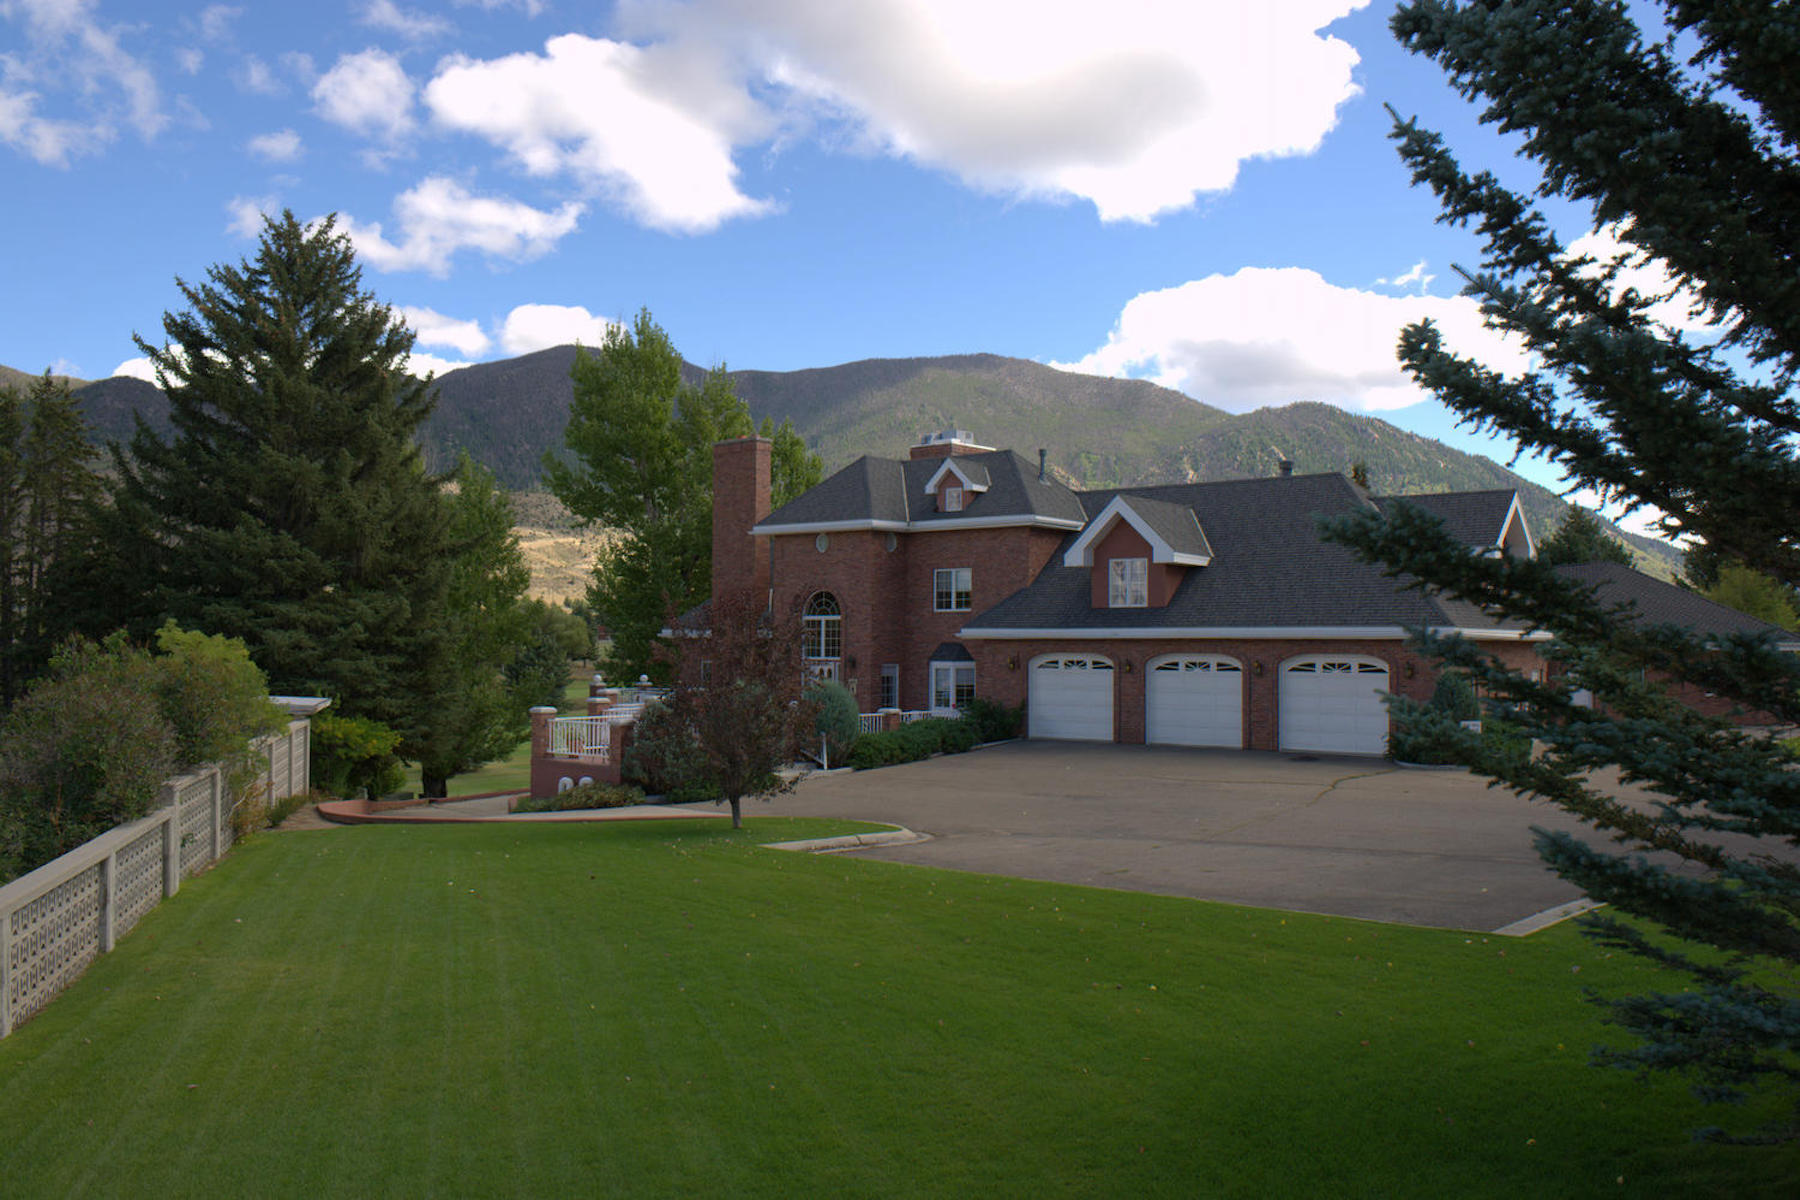 Single Family Home for Sale at Toad Hall Manor 1 Green Lane Butte, Montana, 59701 United States